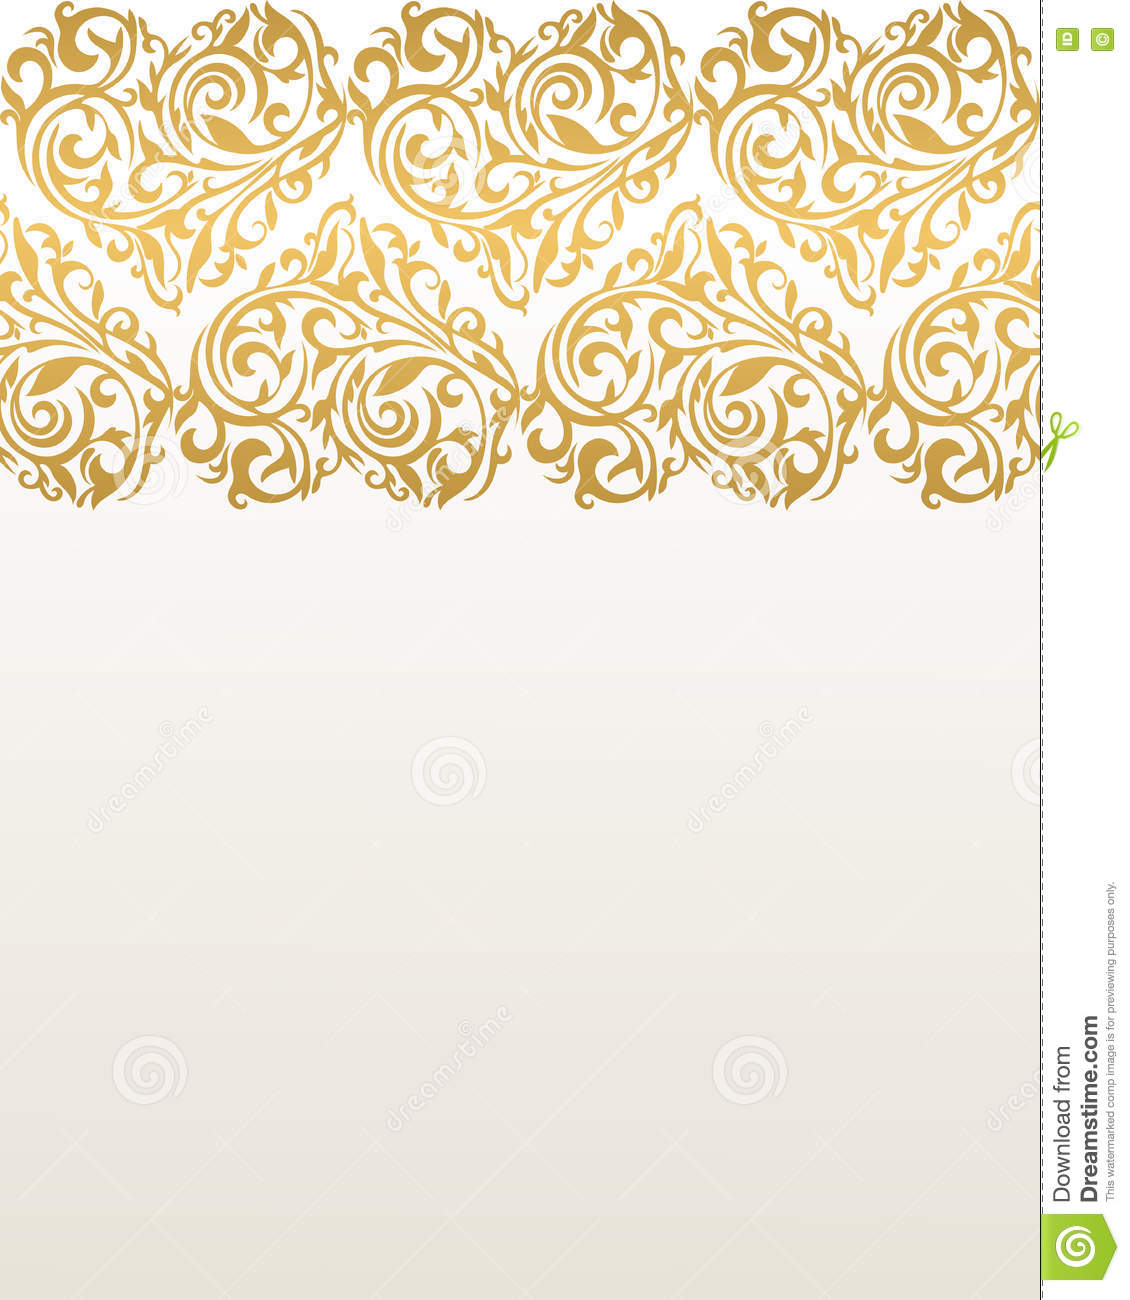 Ornate Vector Border With Hearts Gold Border Border With Heart Stock Vector